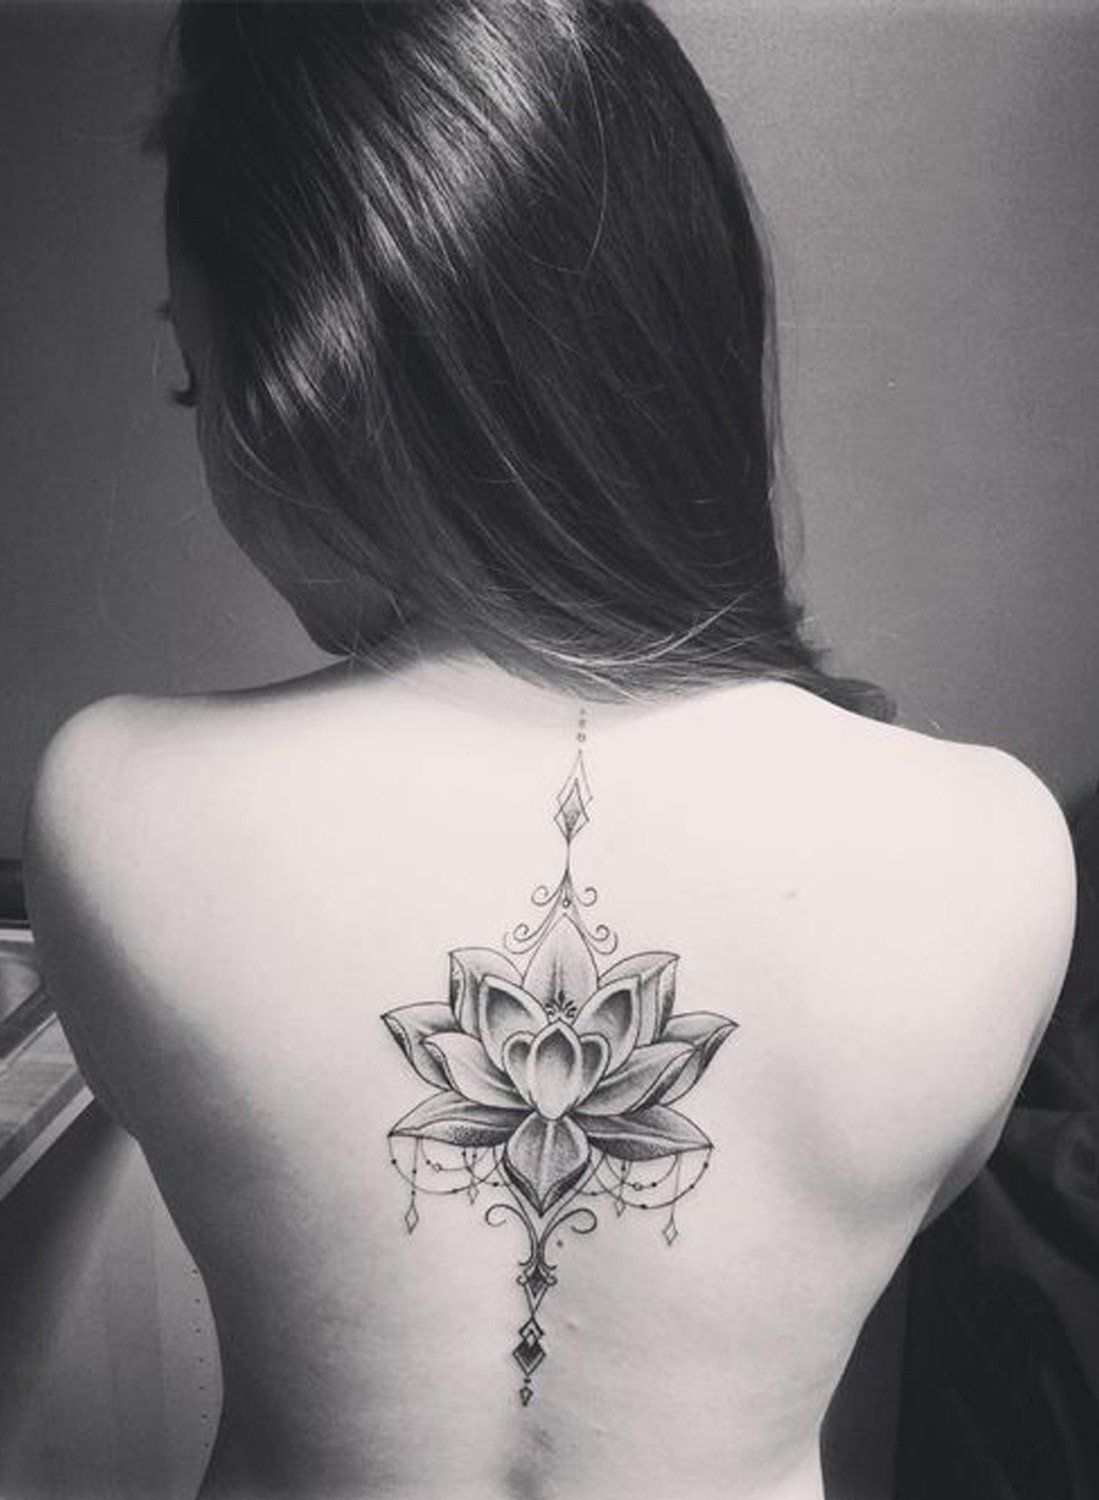 100 Most Popular Lotus Tattoos Ideas For Women Pretty Lotus